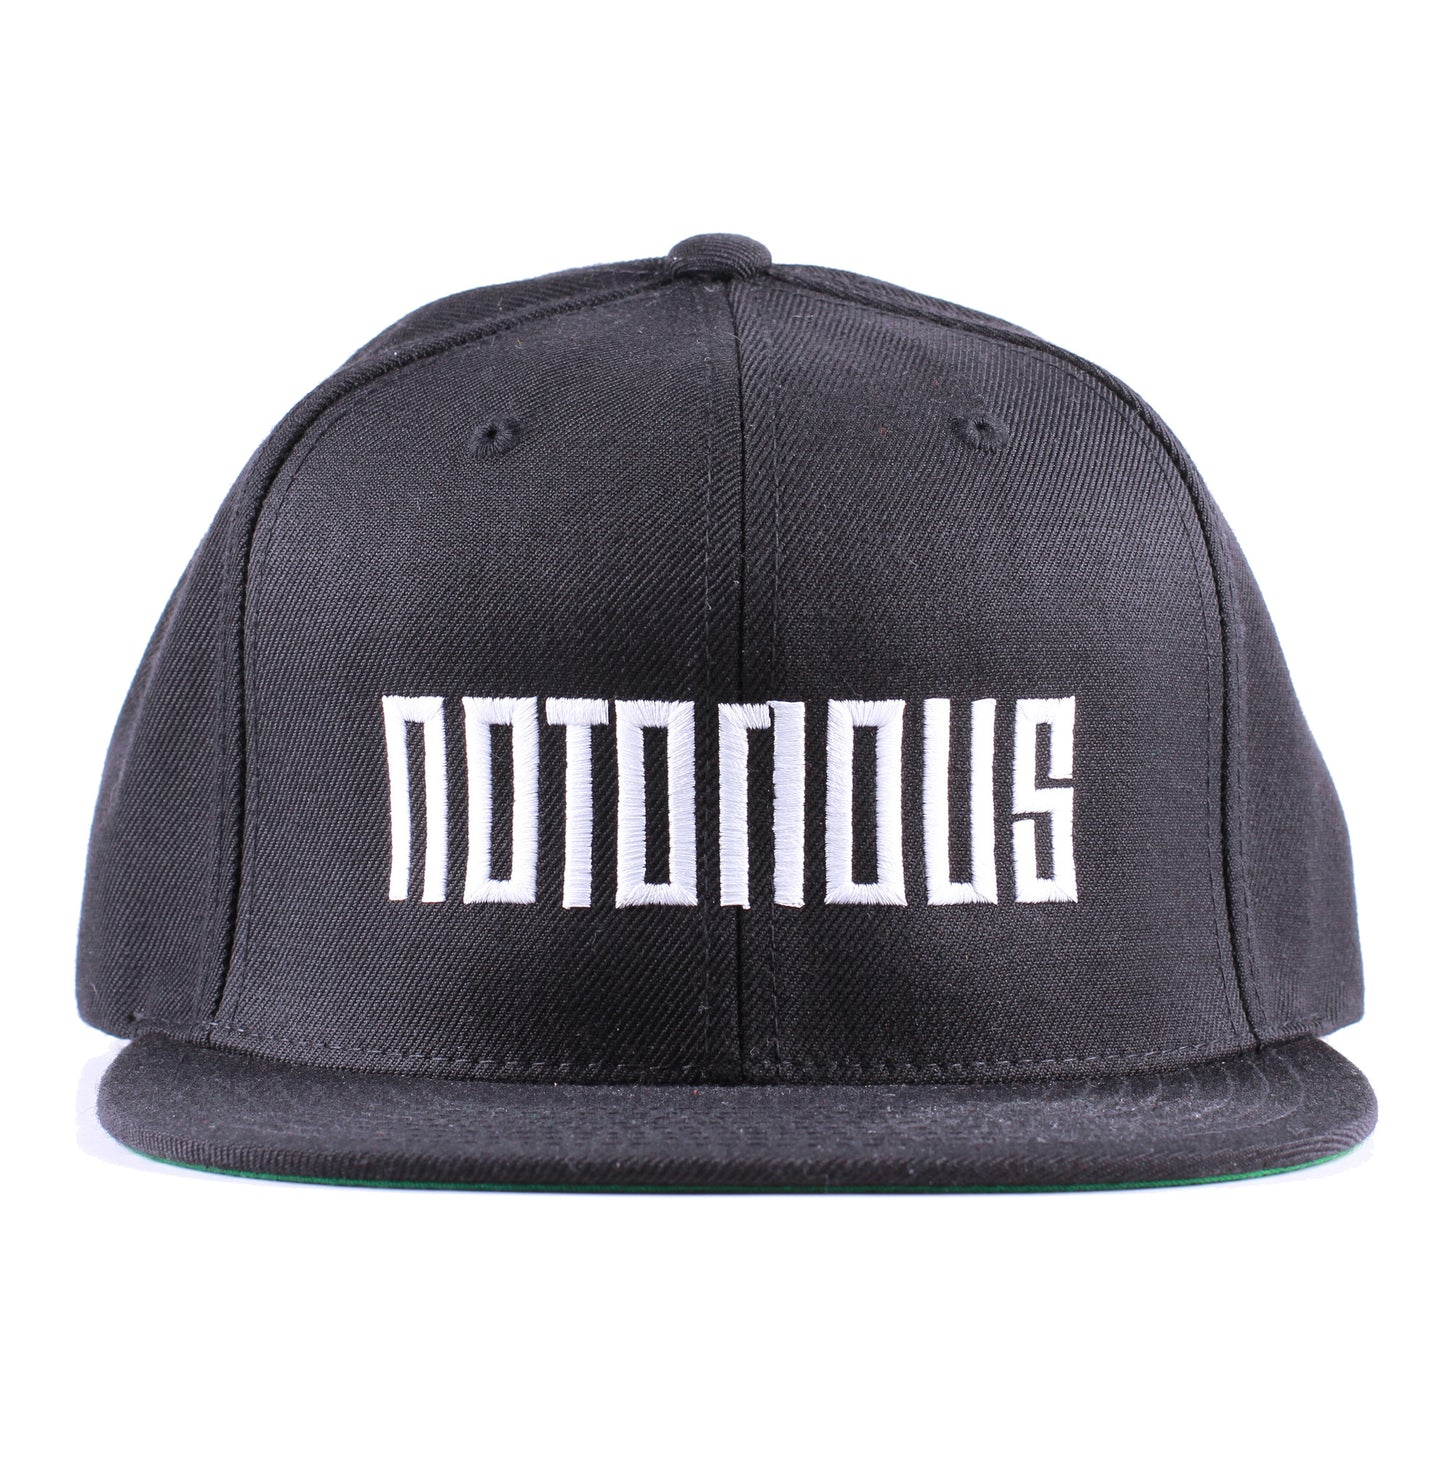 Vintage Frames Company Notorious Black/White Snapback Front